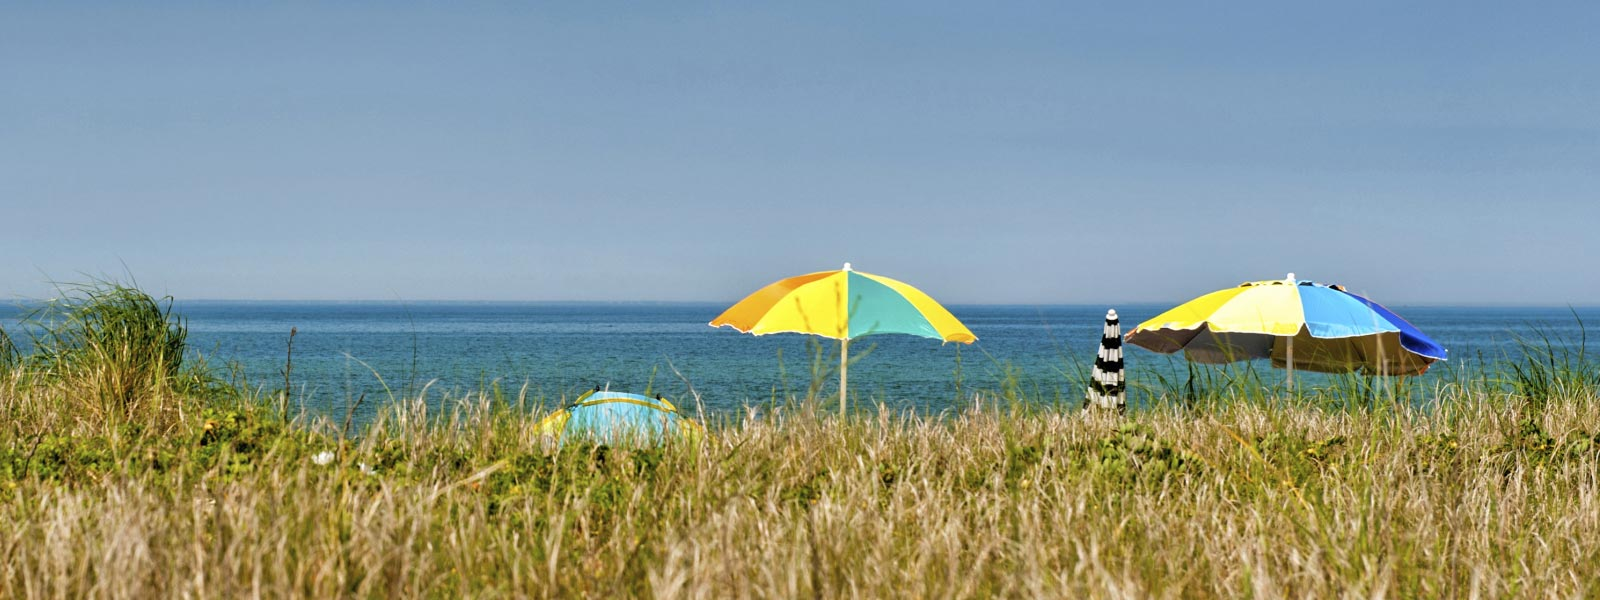 Beach umbrellas and beach grass